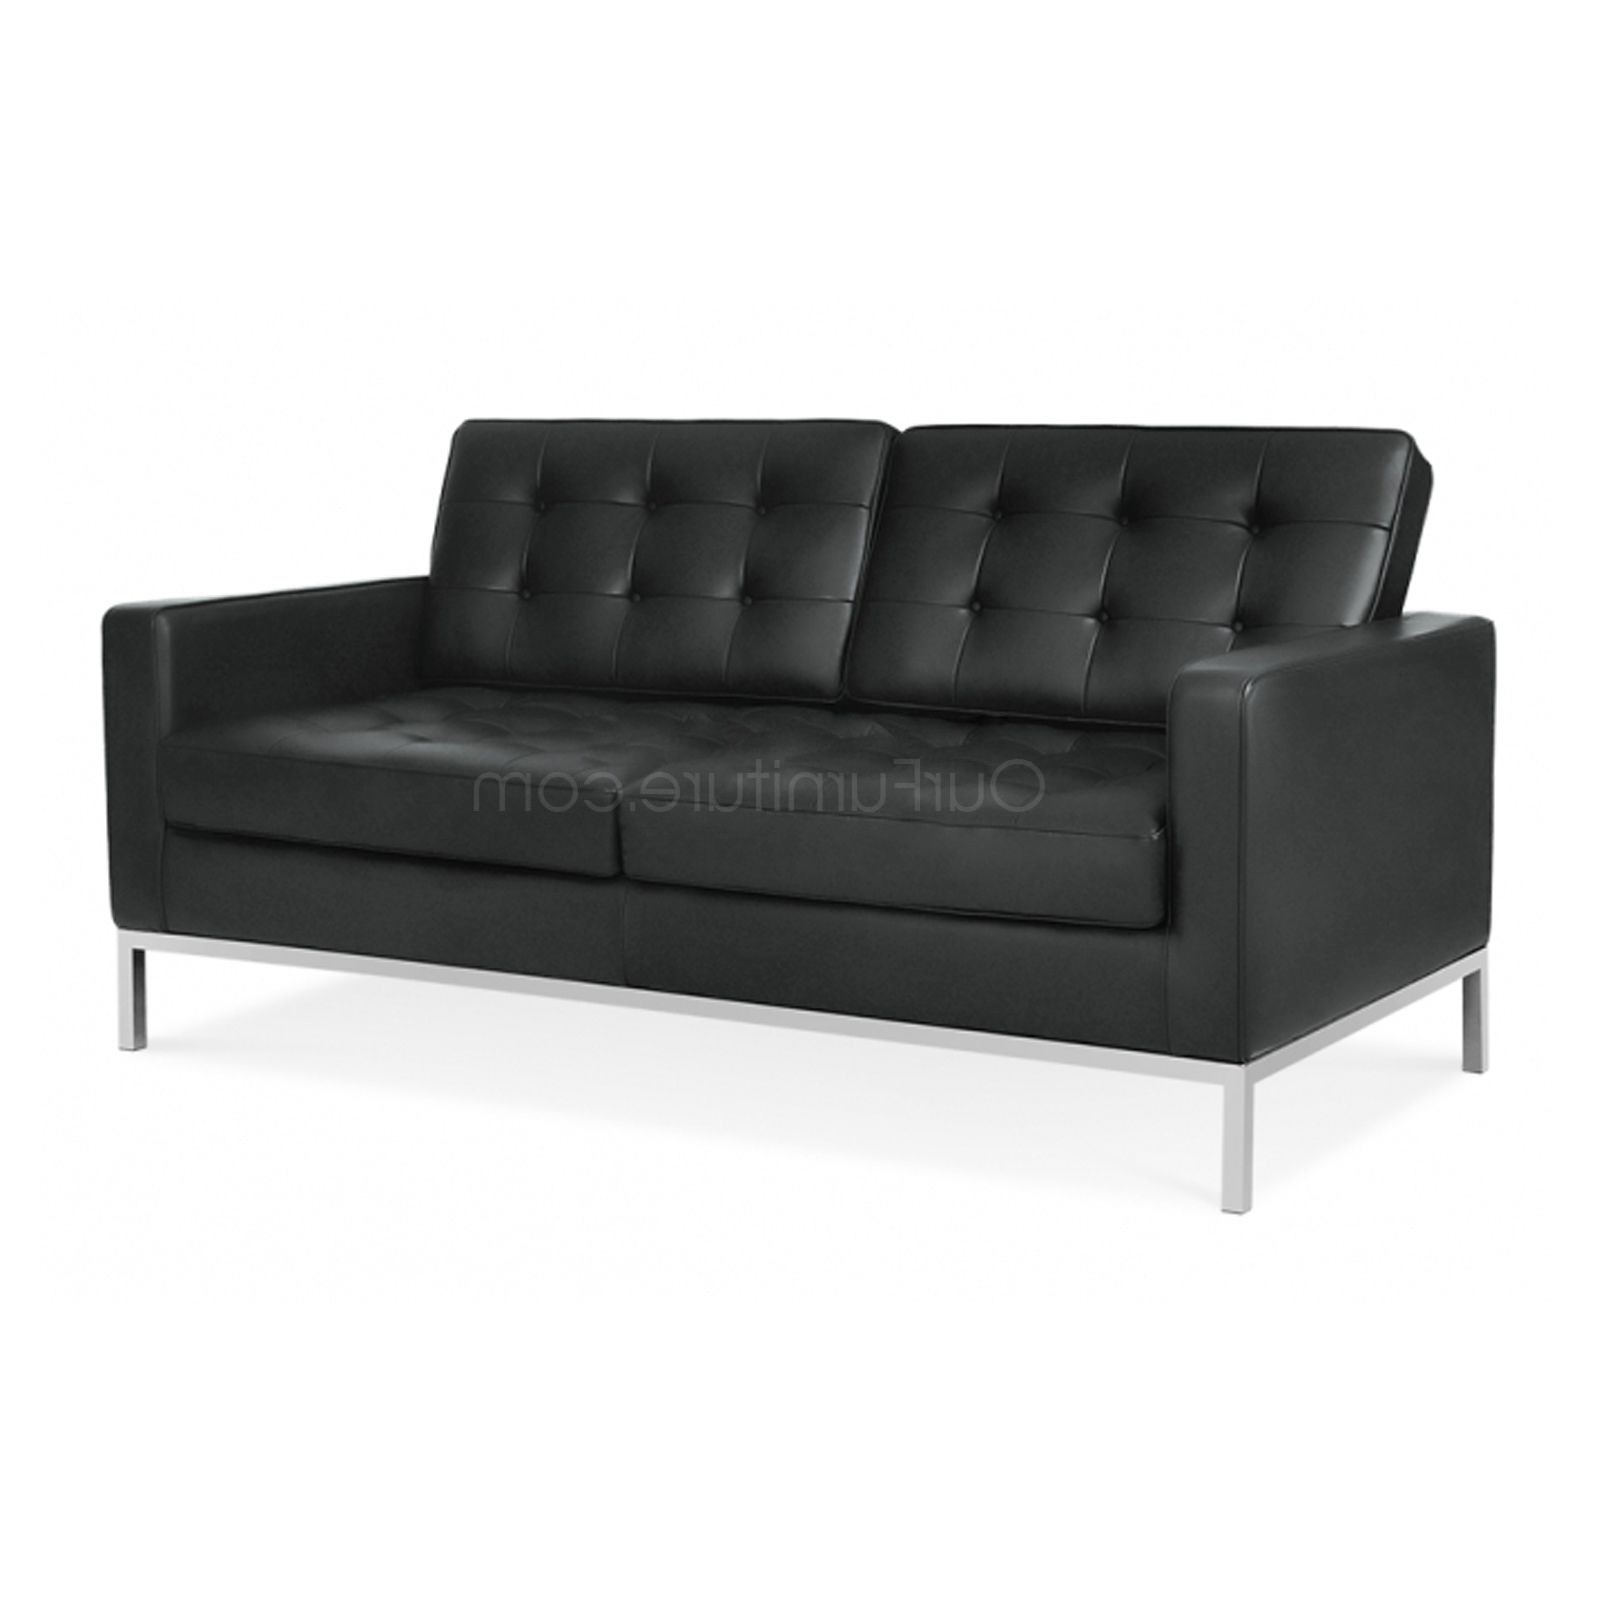 Florence Knoll Style 2 Seater Sofa Semi Aniline Leather Pertaining To Best And Newest Florence Knoll Style Sofas (View 5 of 20)